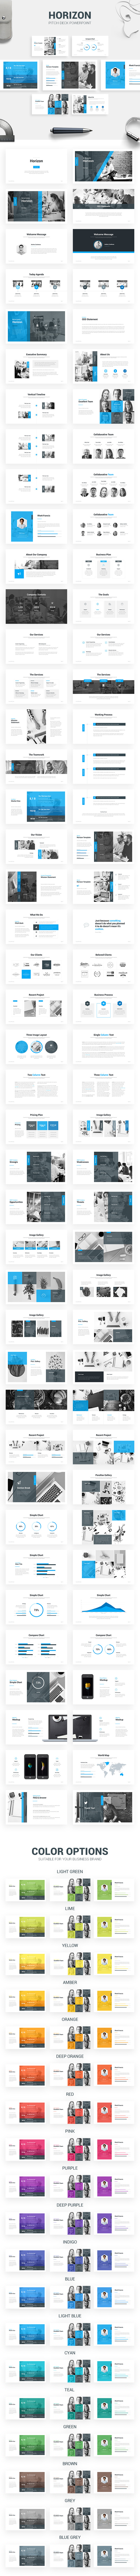 Horizon - Pitch Deck Template - Pitch Deck PowerPoint Templates